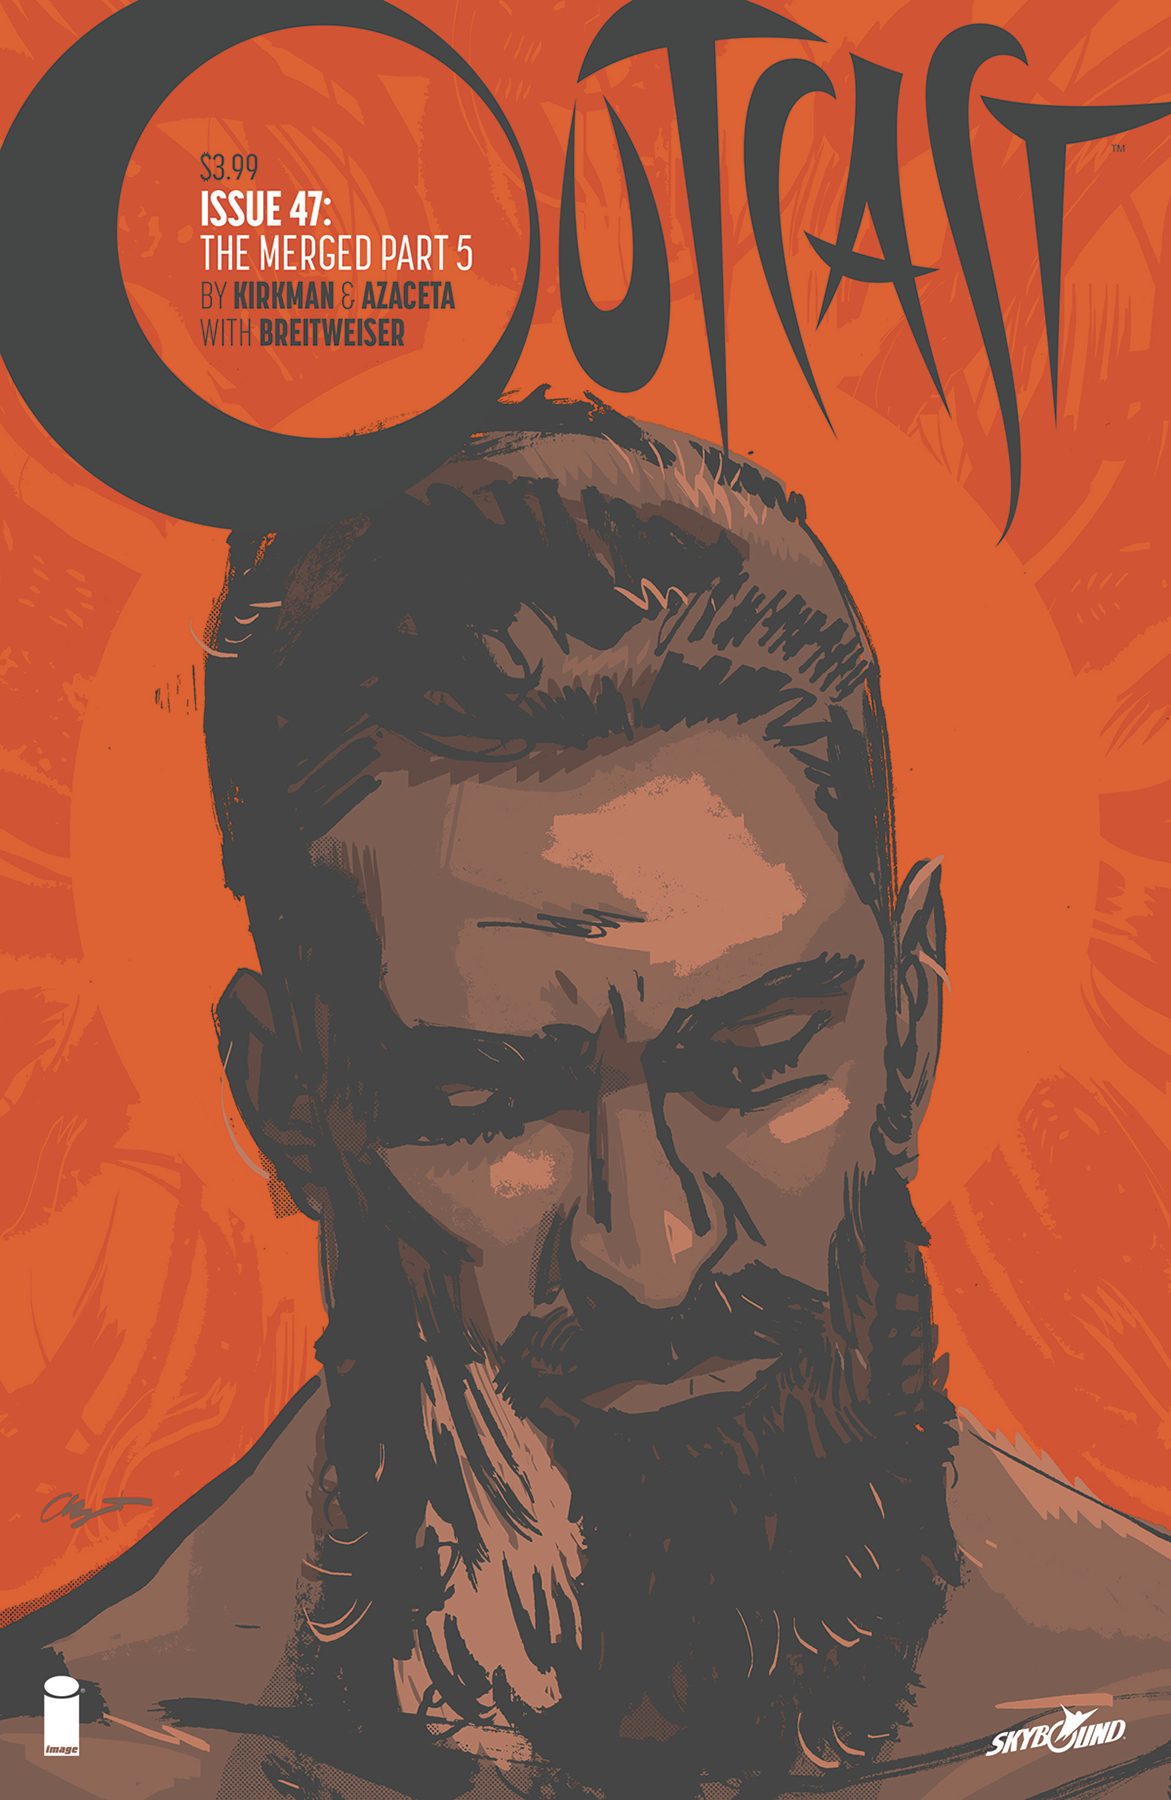 OUTCAST BY KIRKMAN & AZACETA #47 (MR)